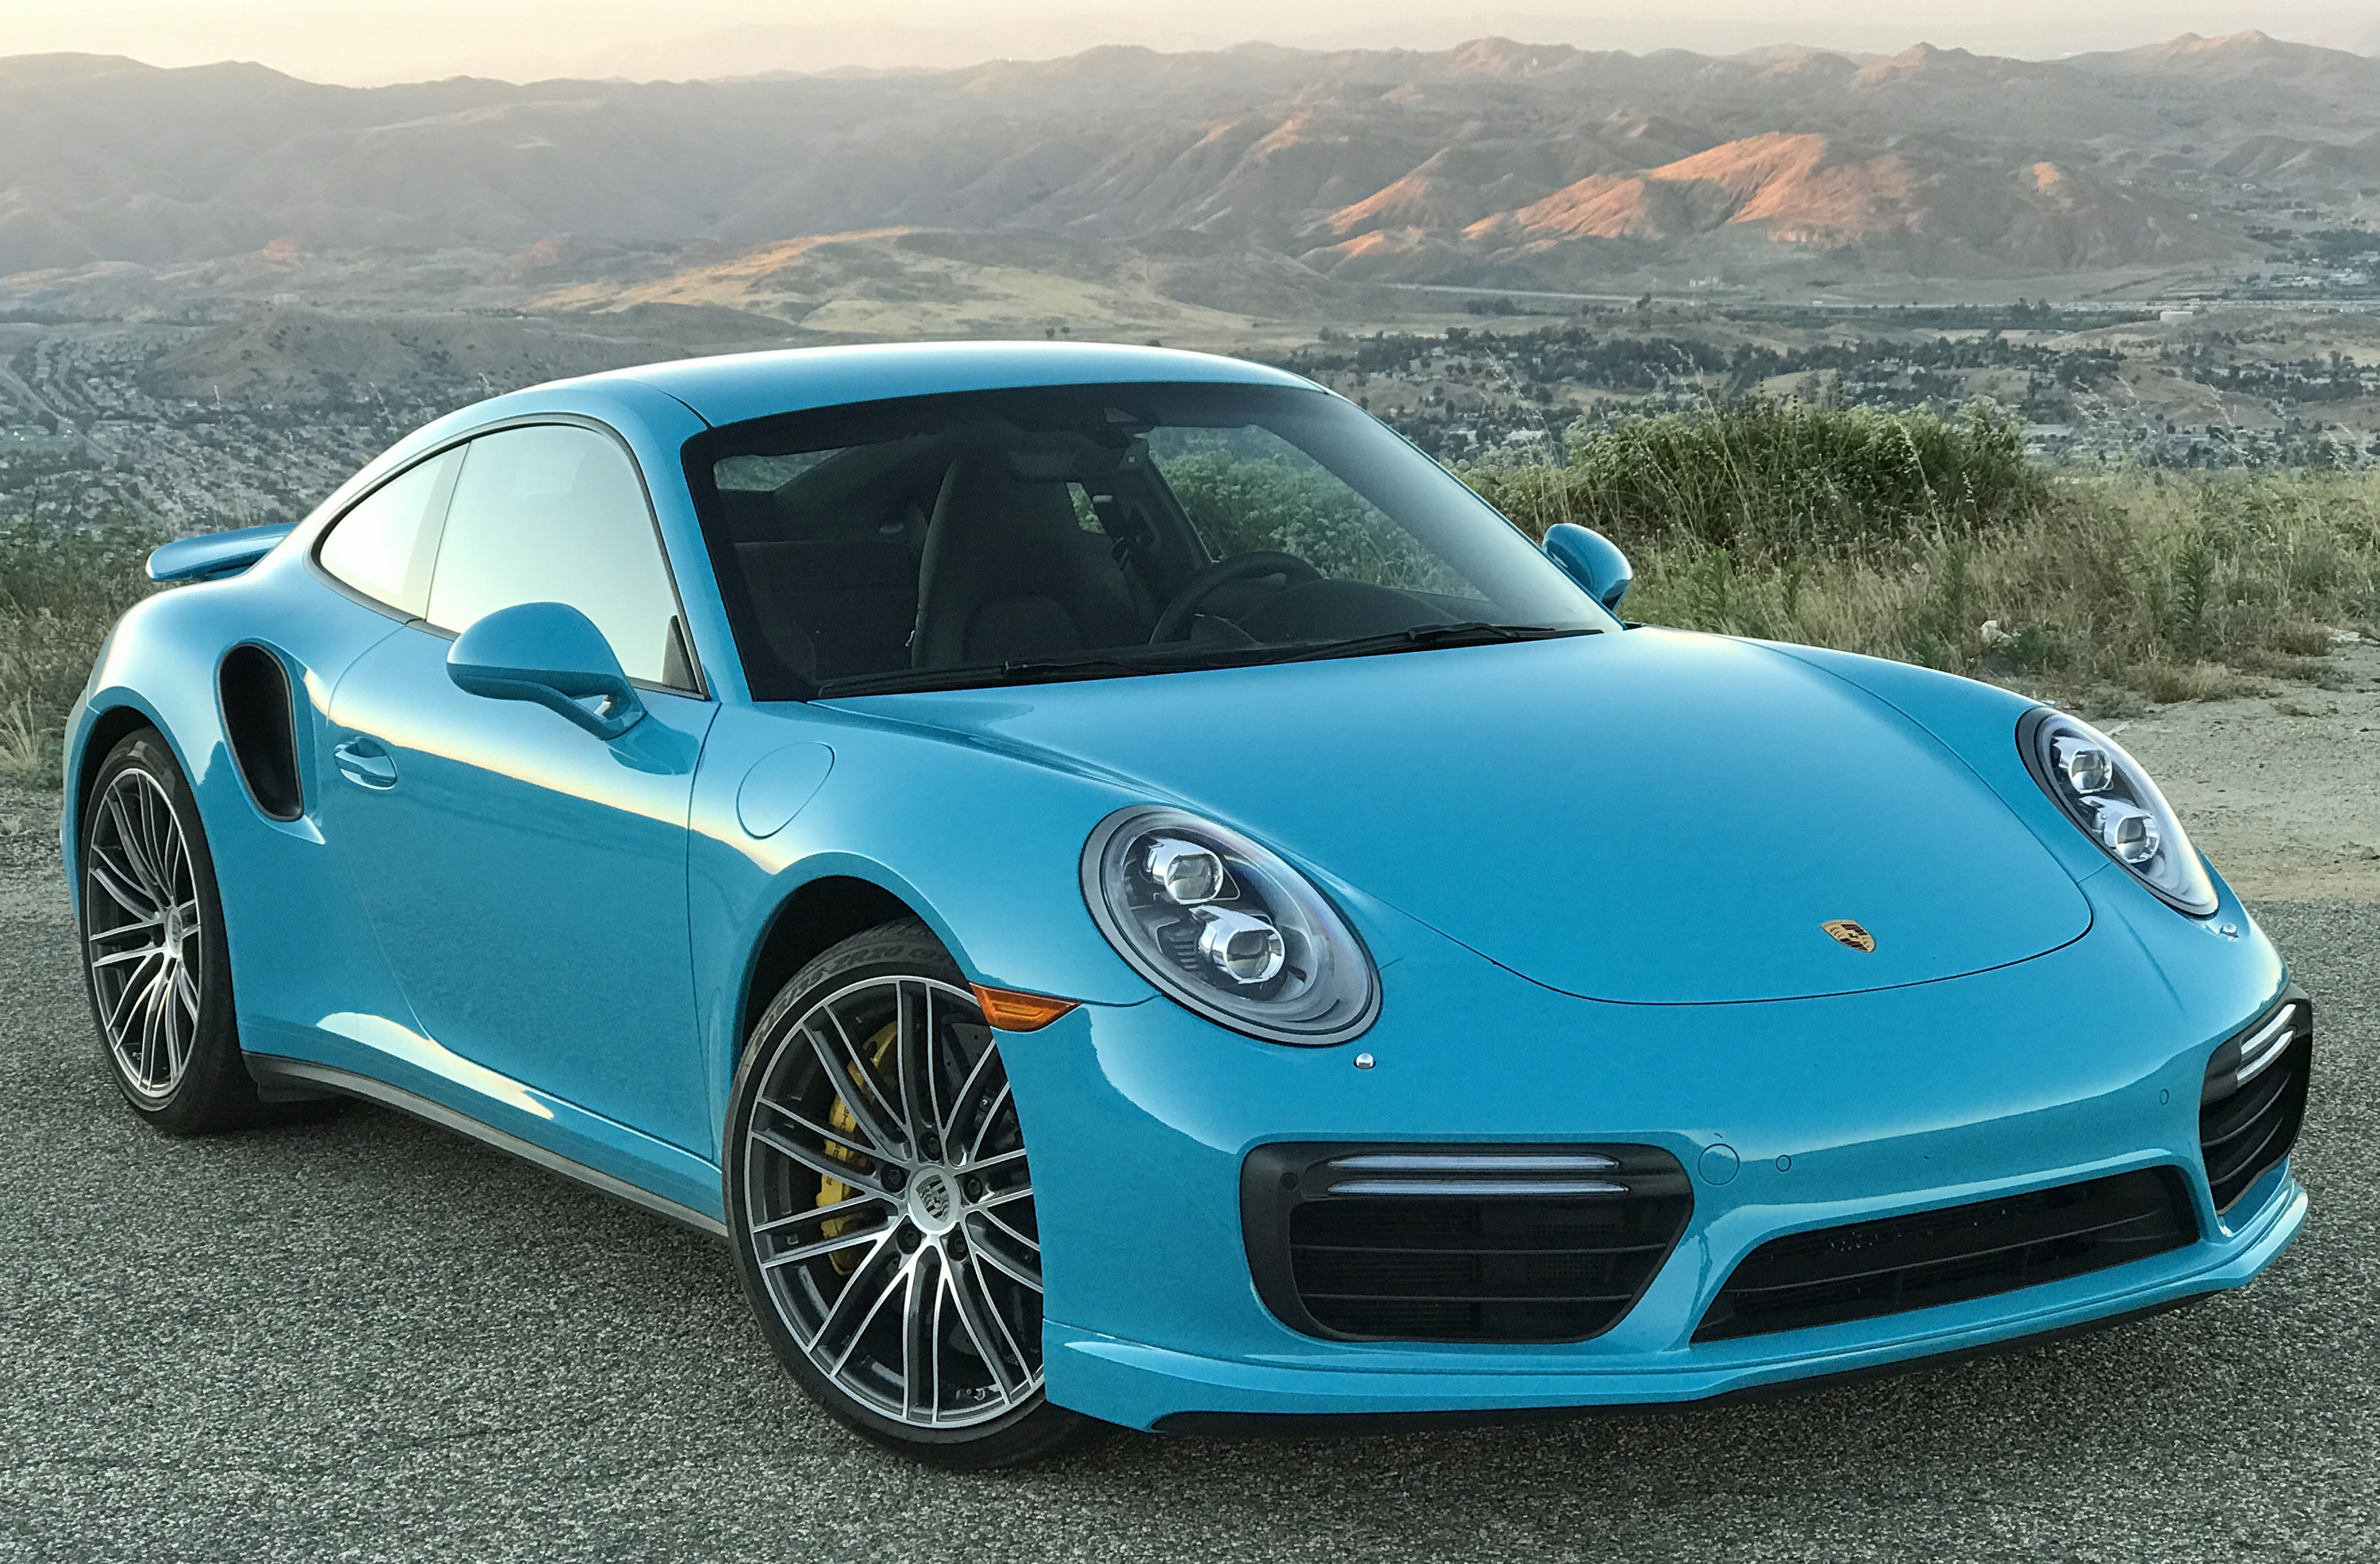 2017 Porsche 911 Turbo S Front Miami Blue